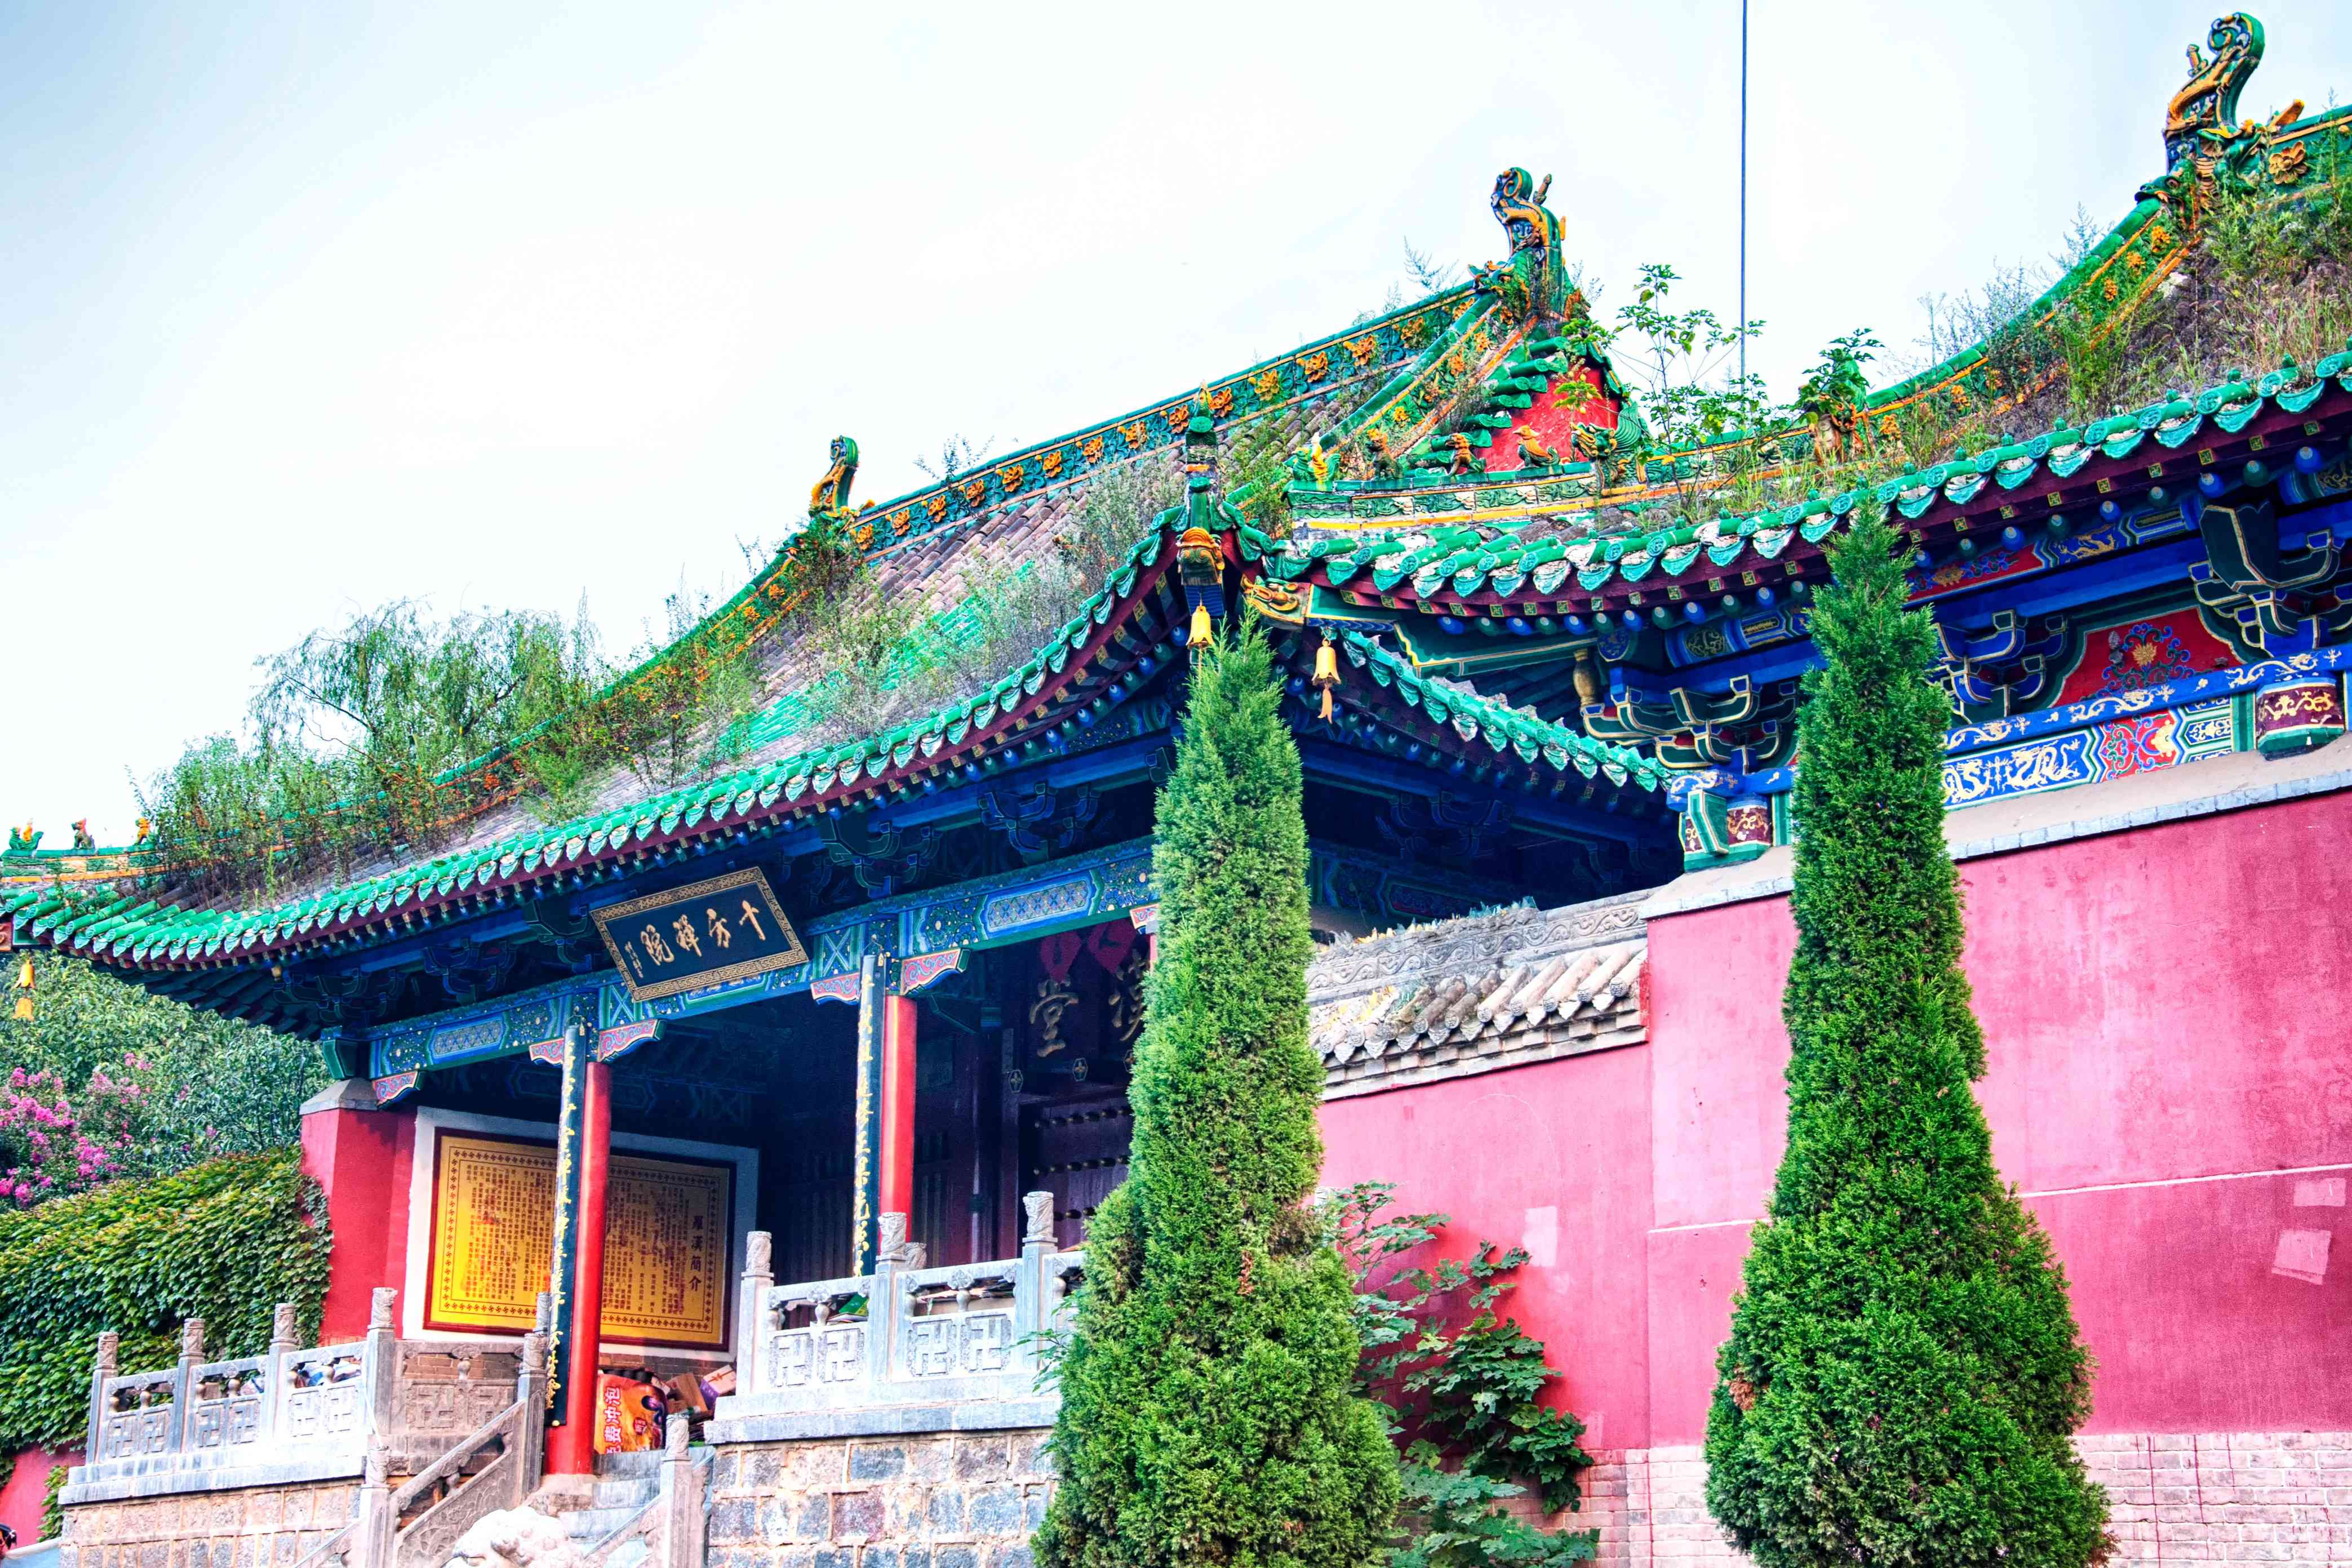 The colorful exterior and pagoda of Shifang Buddhist Temple on a sunny day in Dengfeng City, Henan